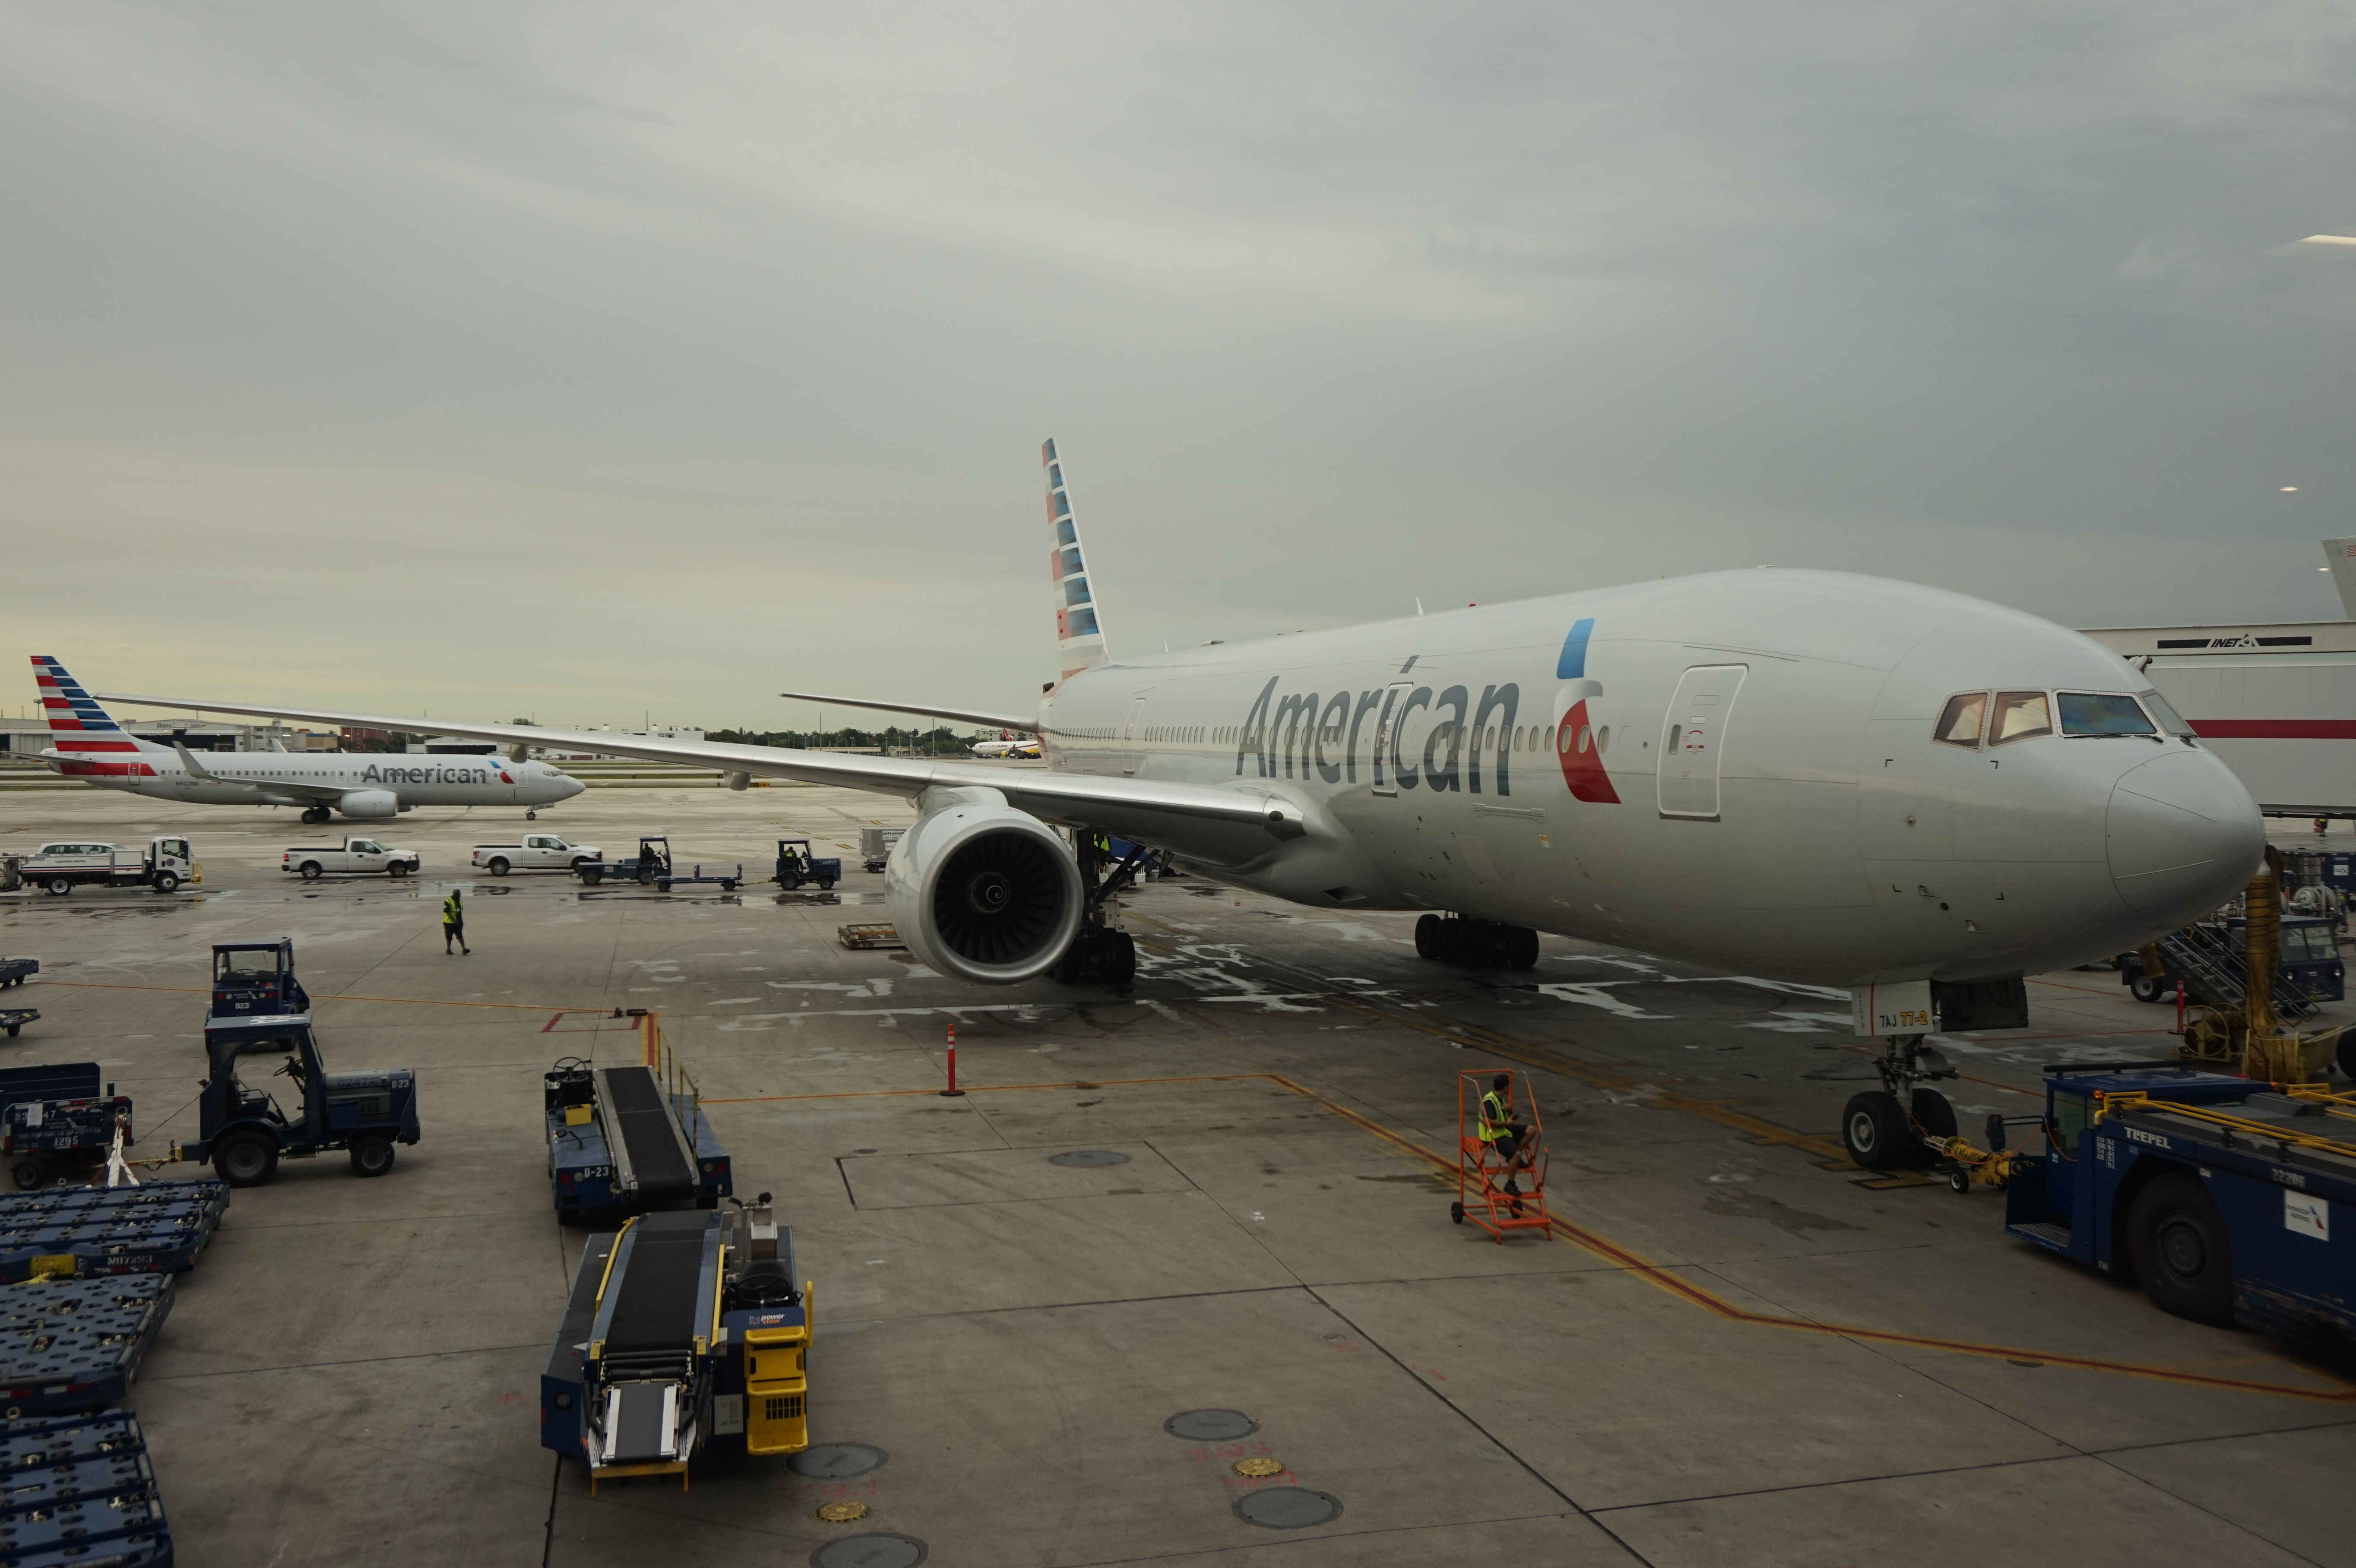 American Airlines A330 at Miami International Airport